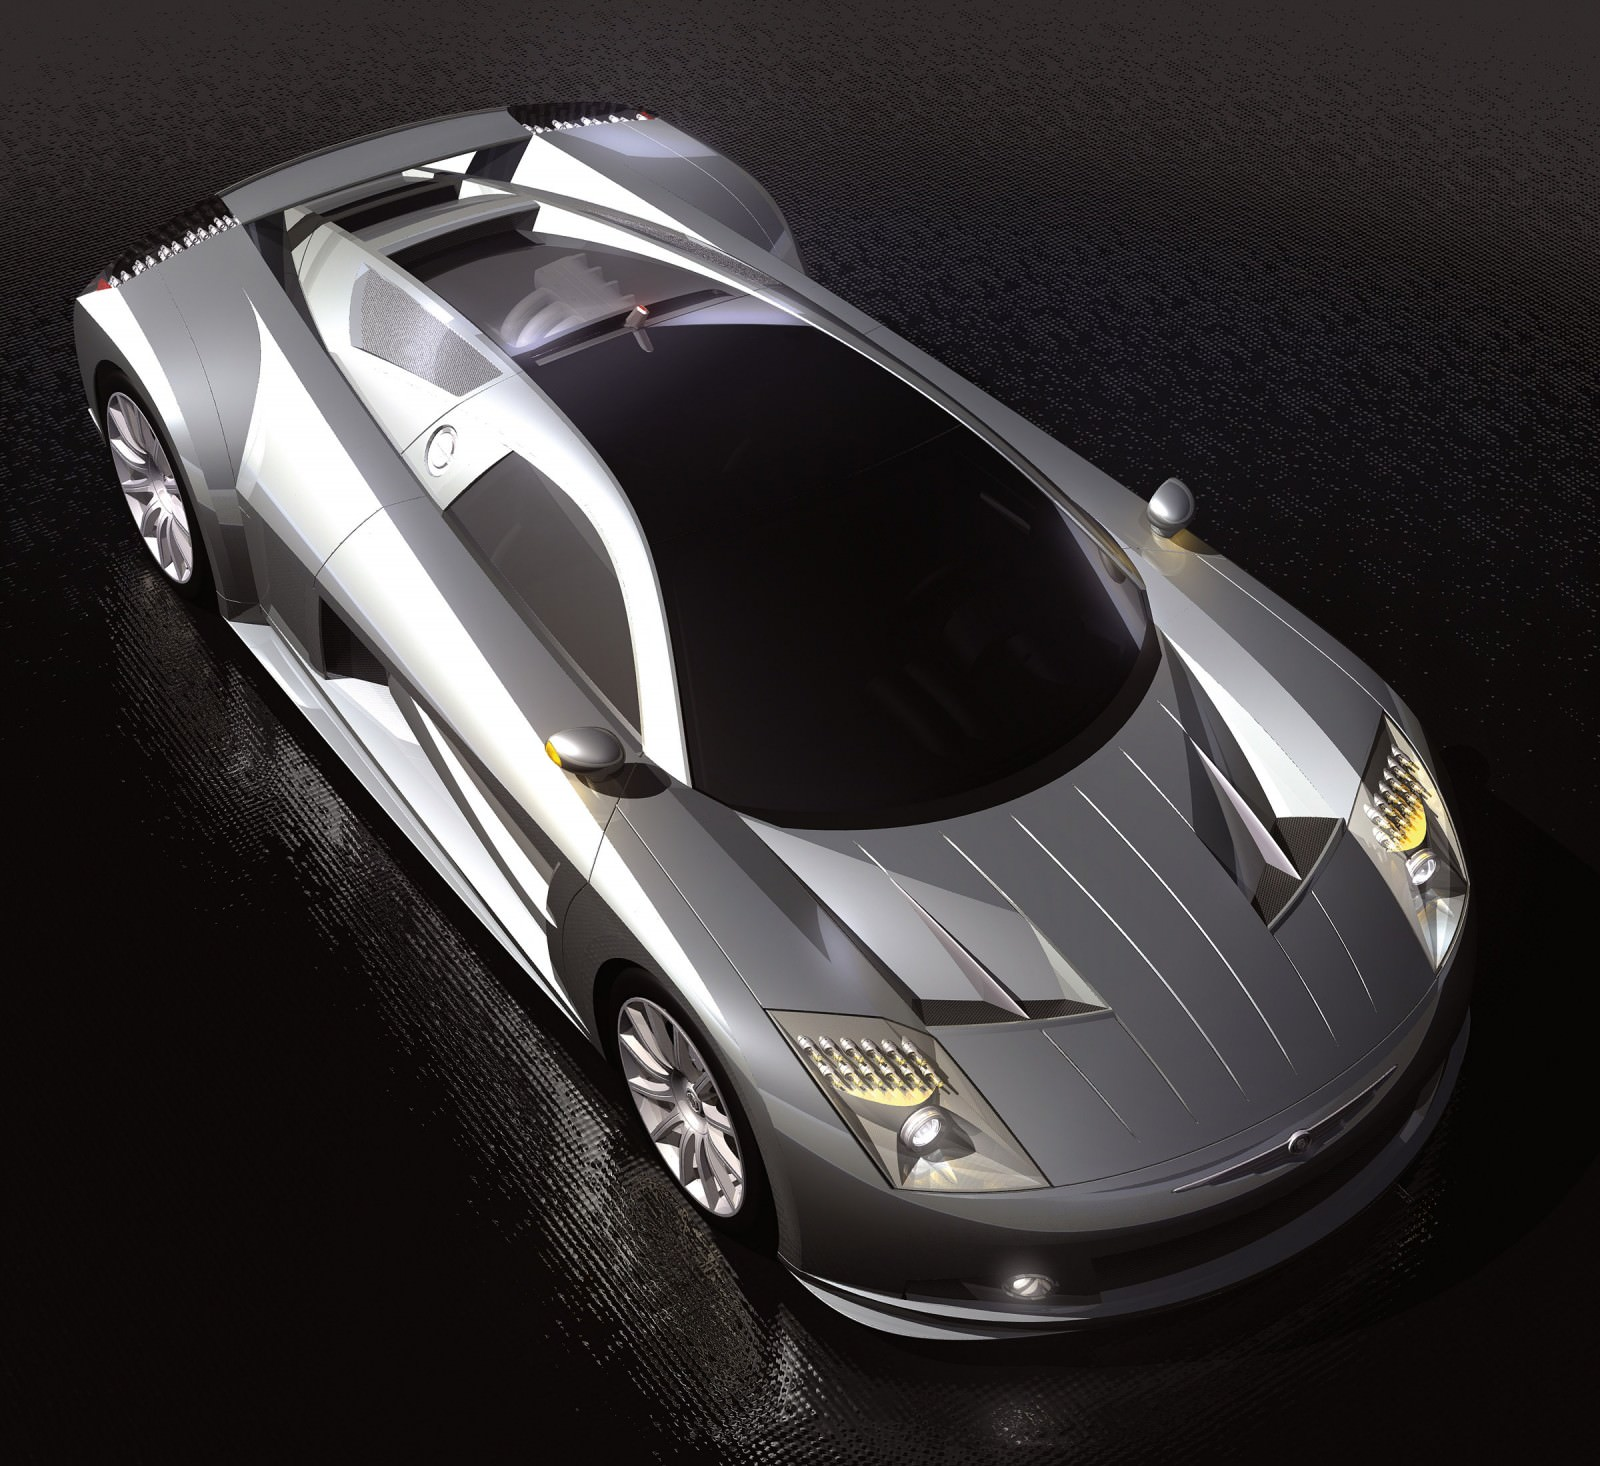 Chrysler me 412 pictures